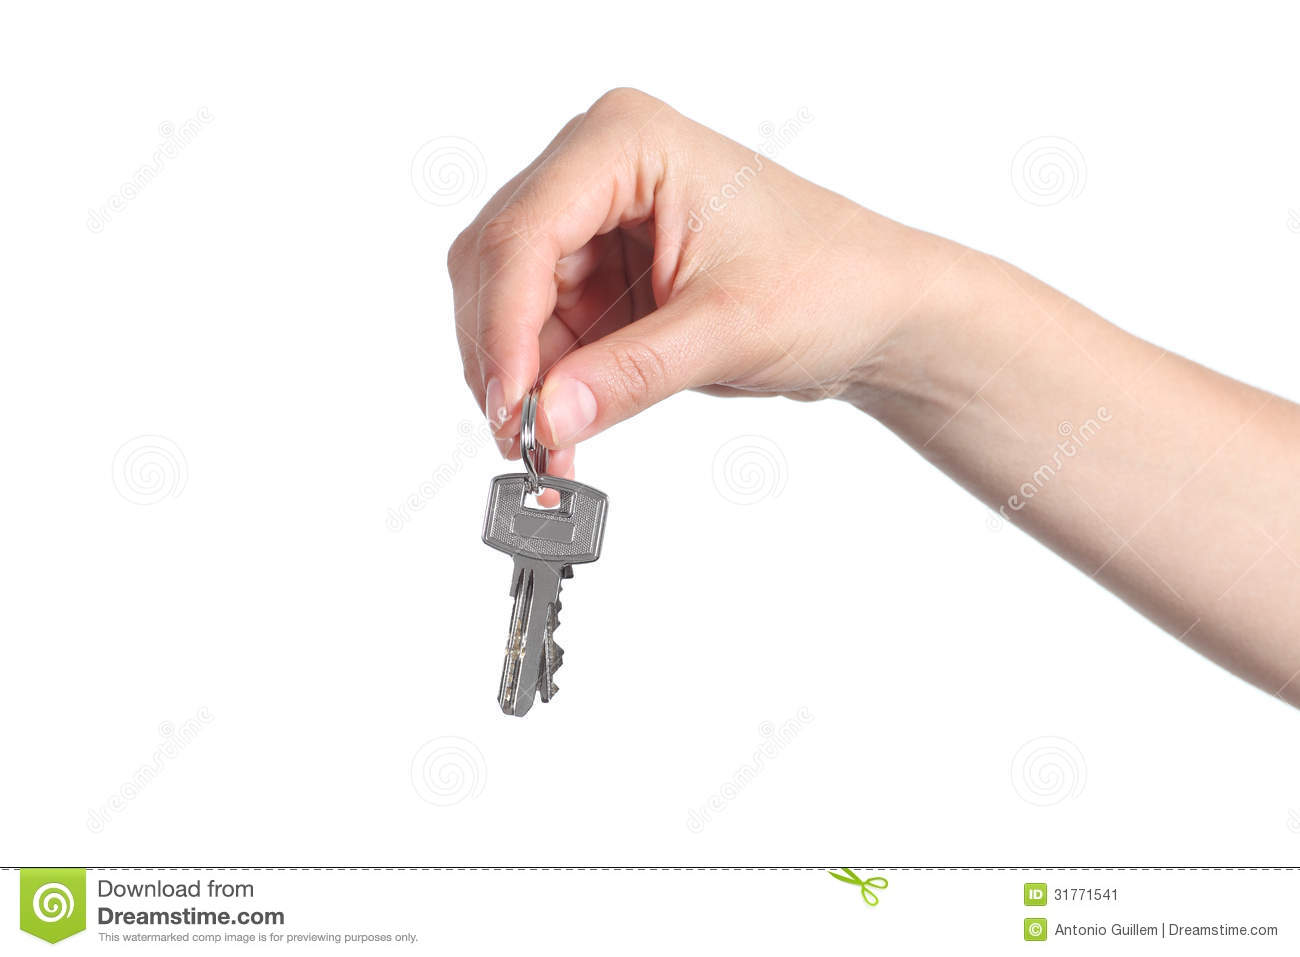 Key Car Dealership >> Side View Of Home Keys Hanging From A Woman Hand Stock Image - Image: 31771541